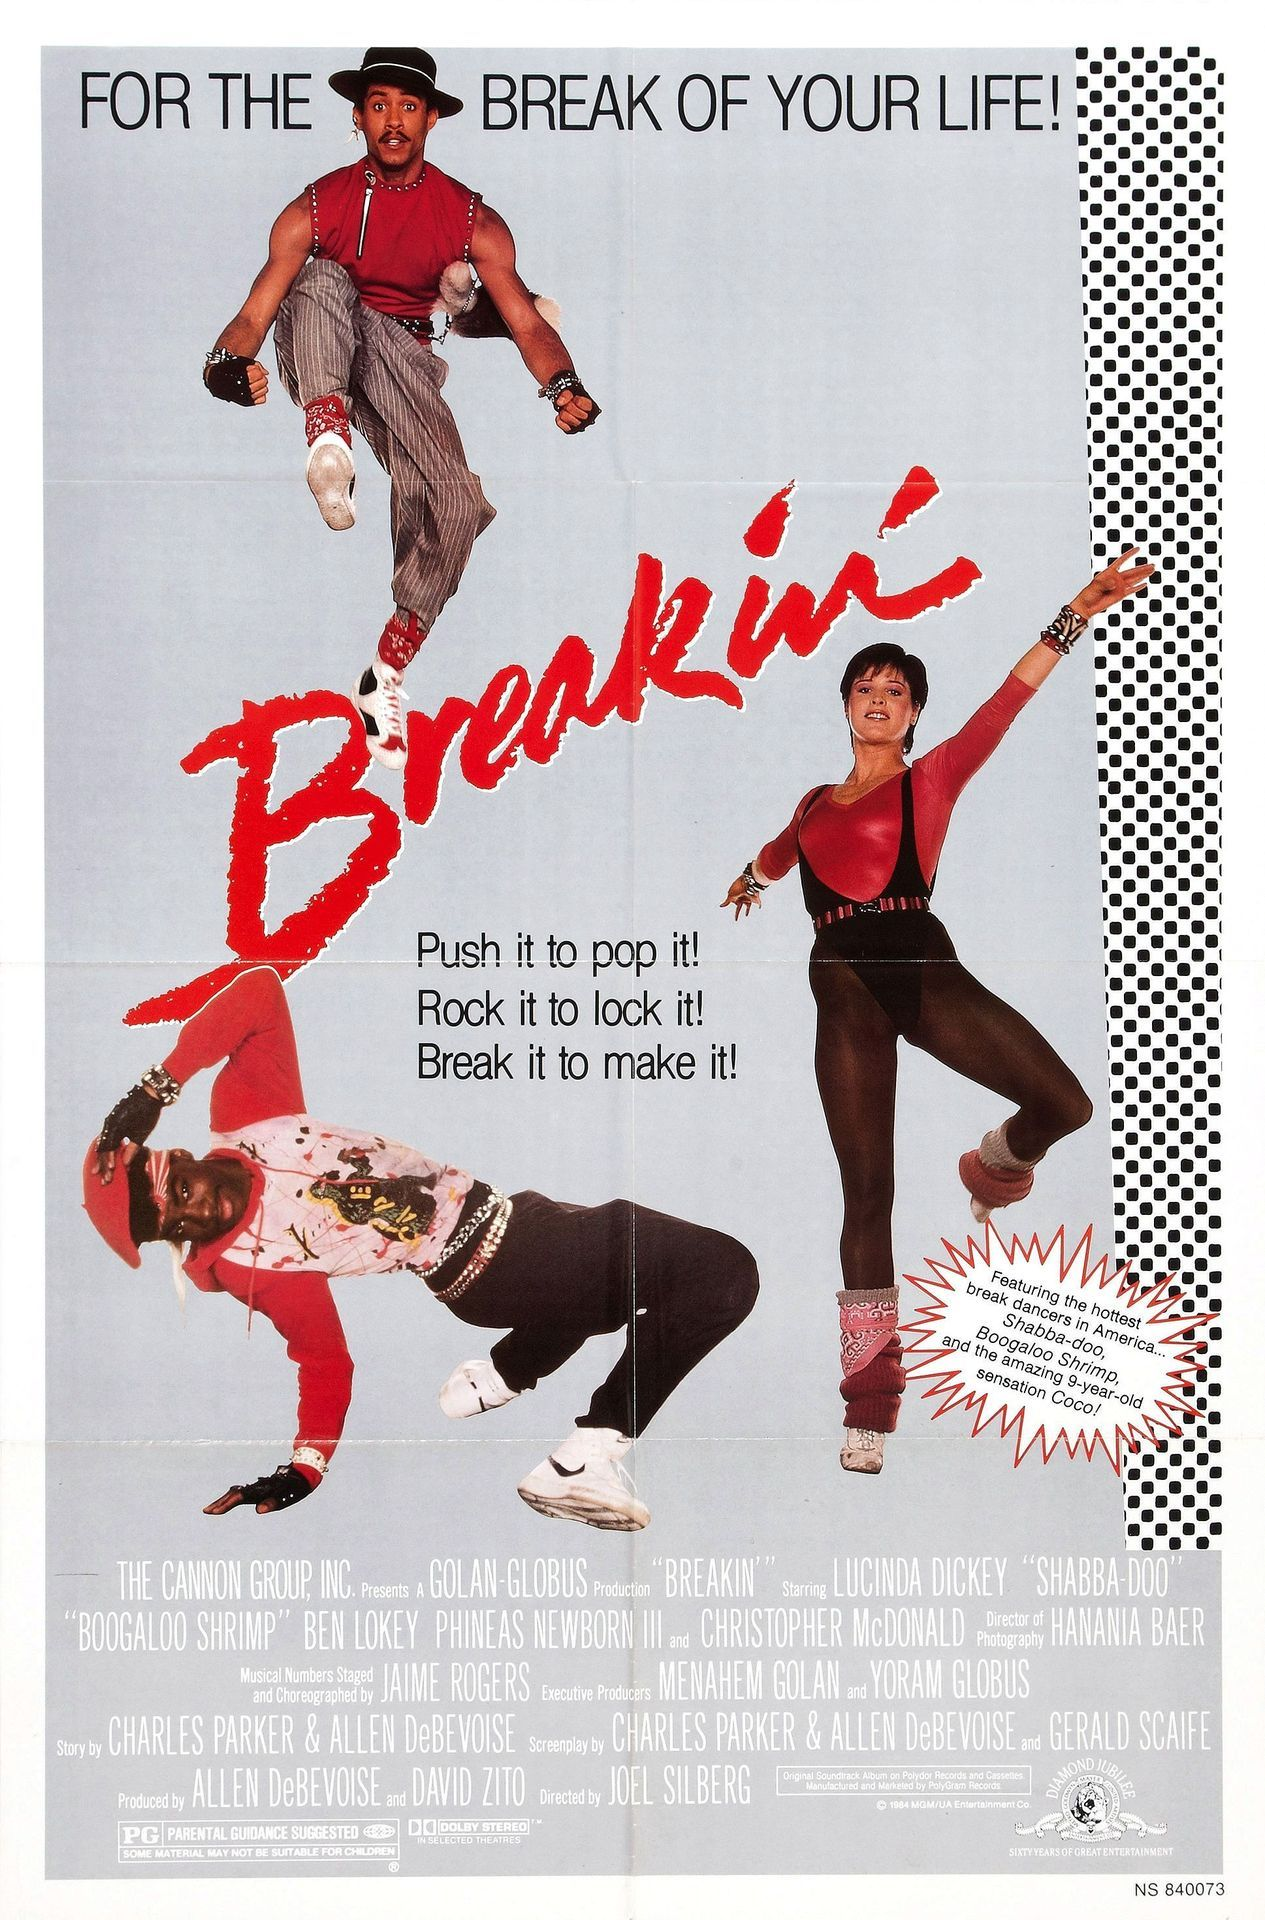 The Source  Today In Hip Hop History: The B-Boy Flick 'Breakin'' Hit Theaters 37 Years Ago